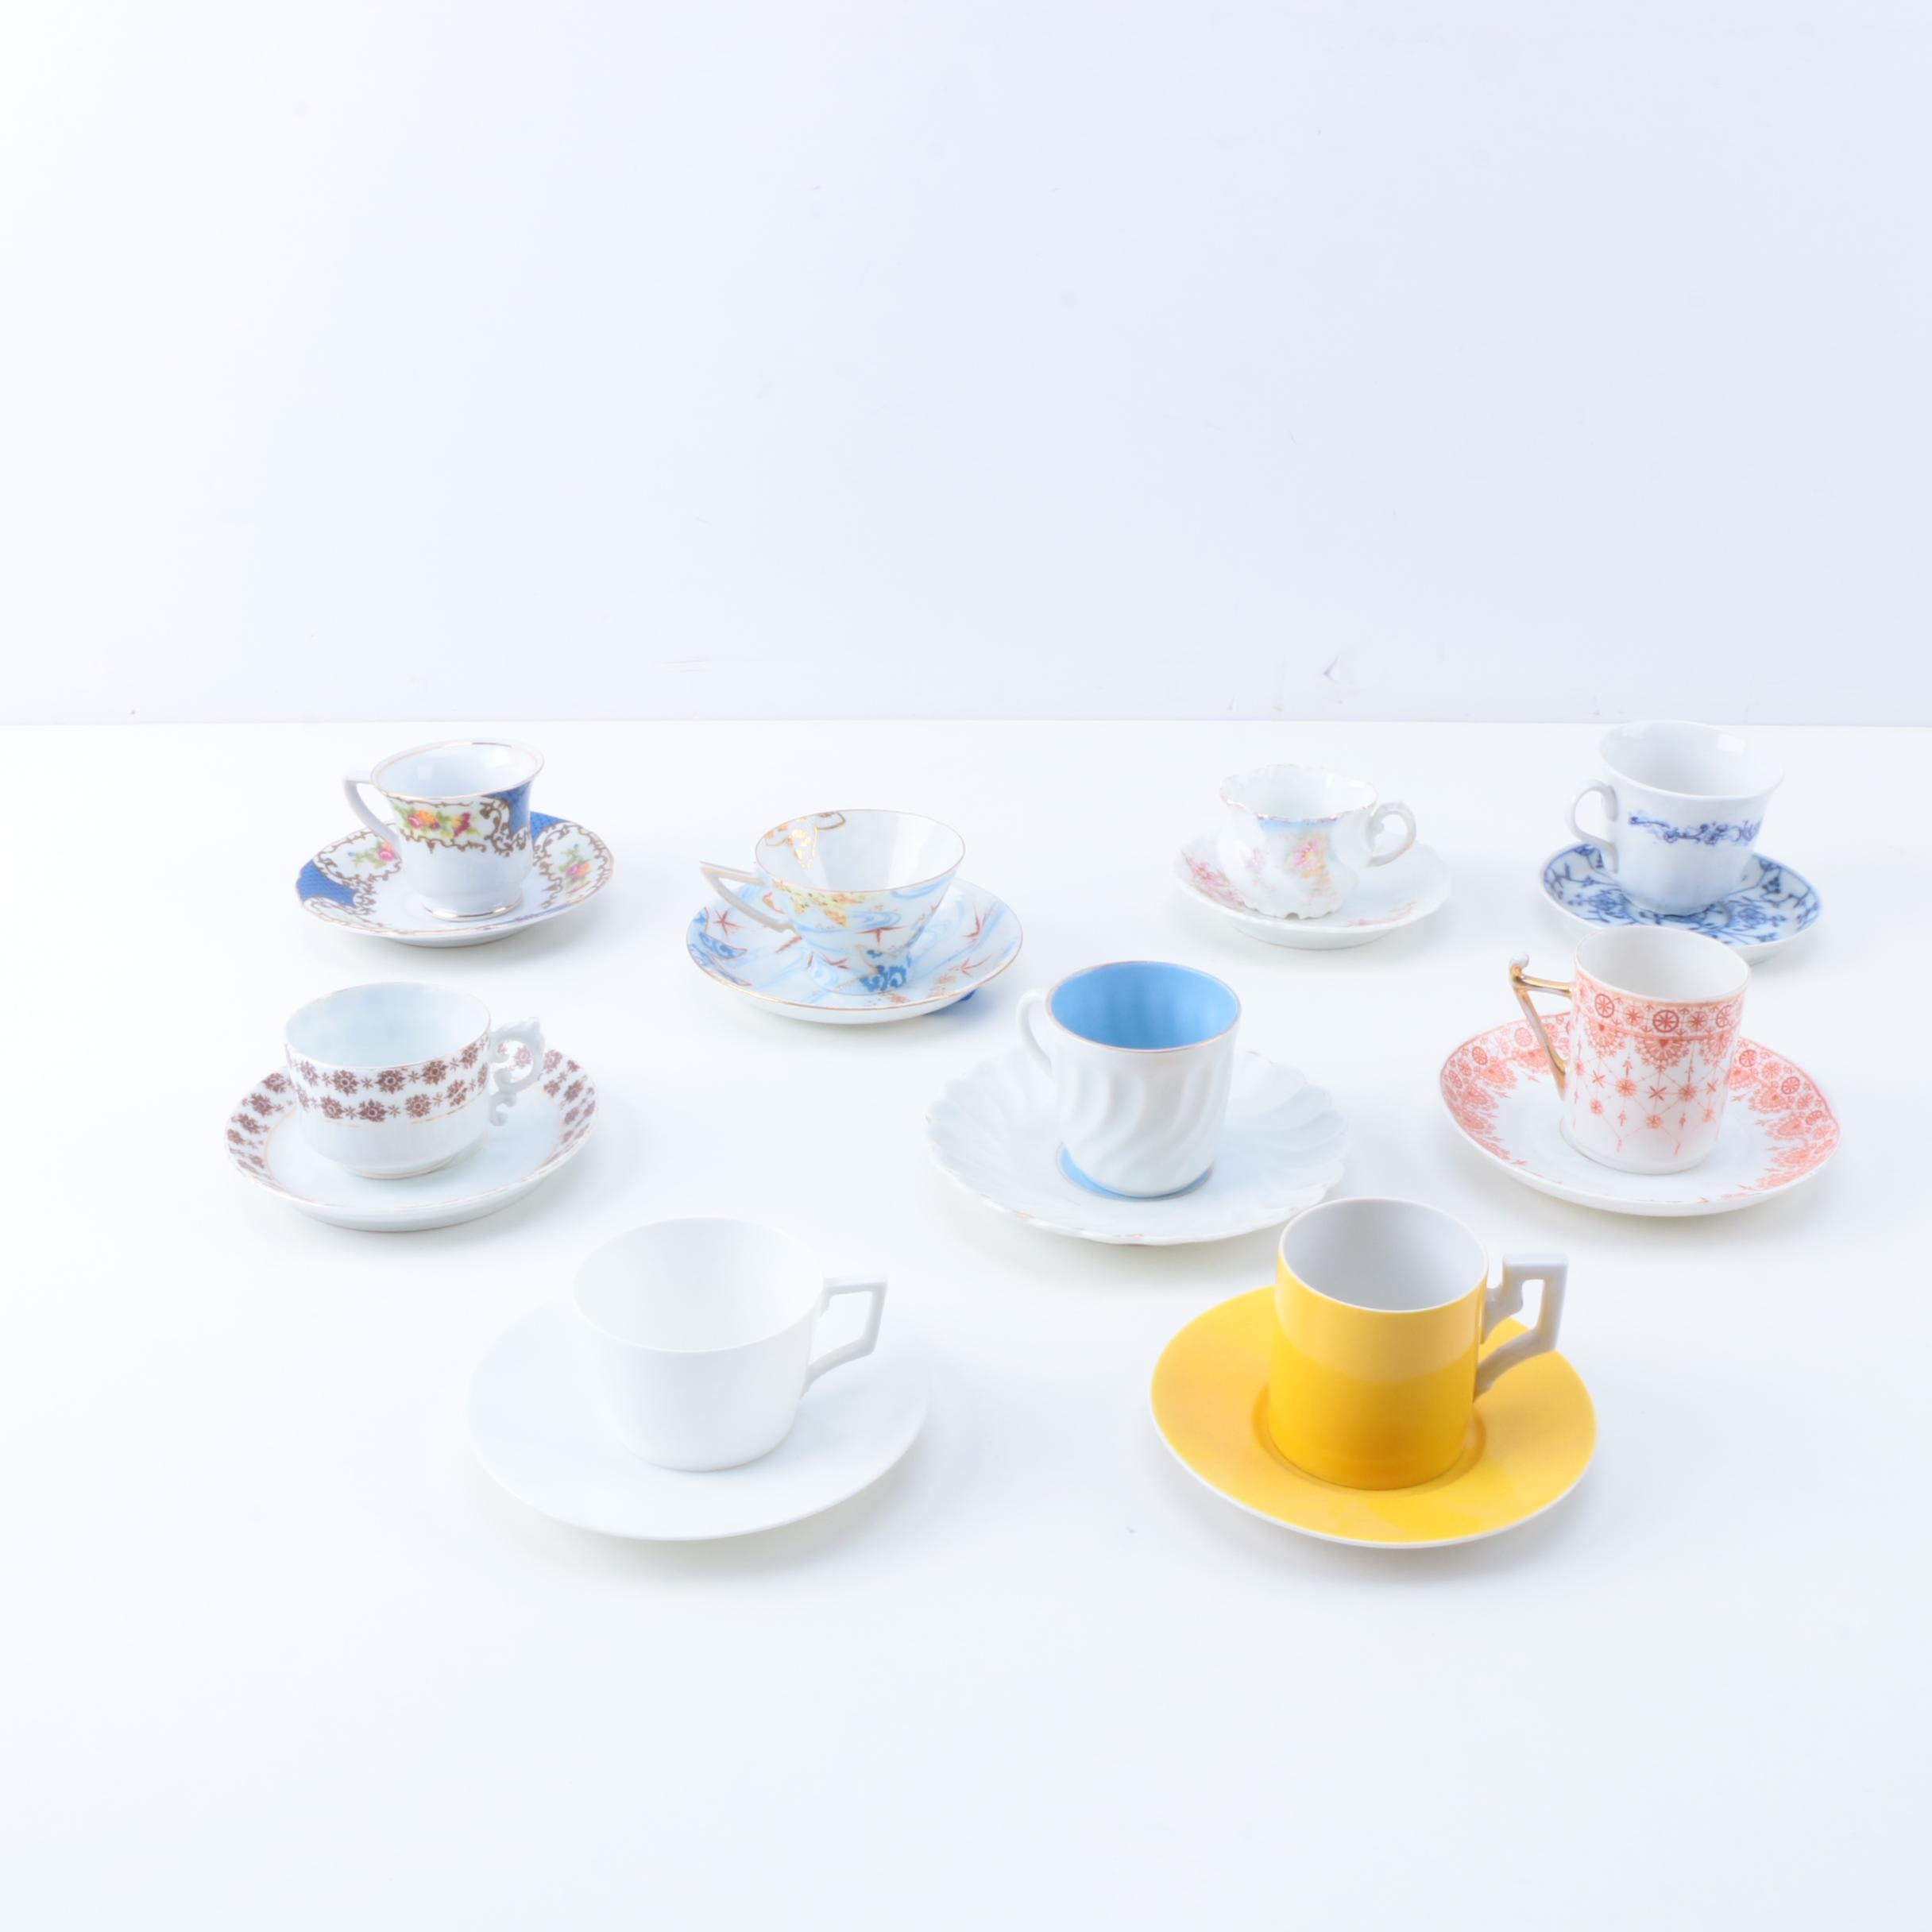 Porcelain Teacups and Saucers Including Limoges and Royal Bayreuth